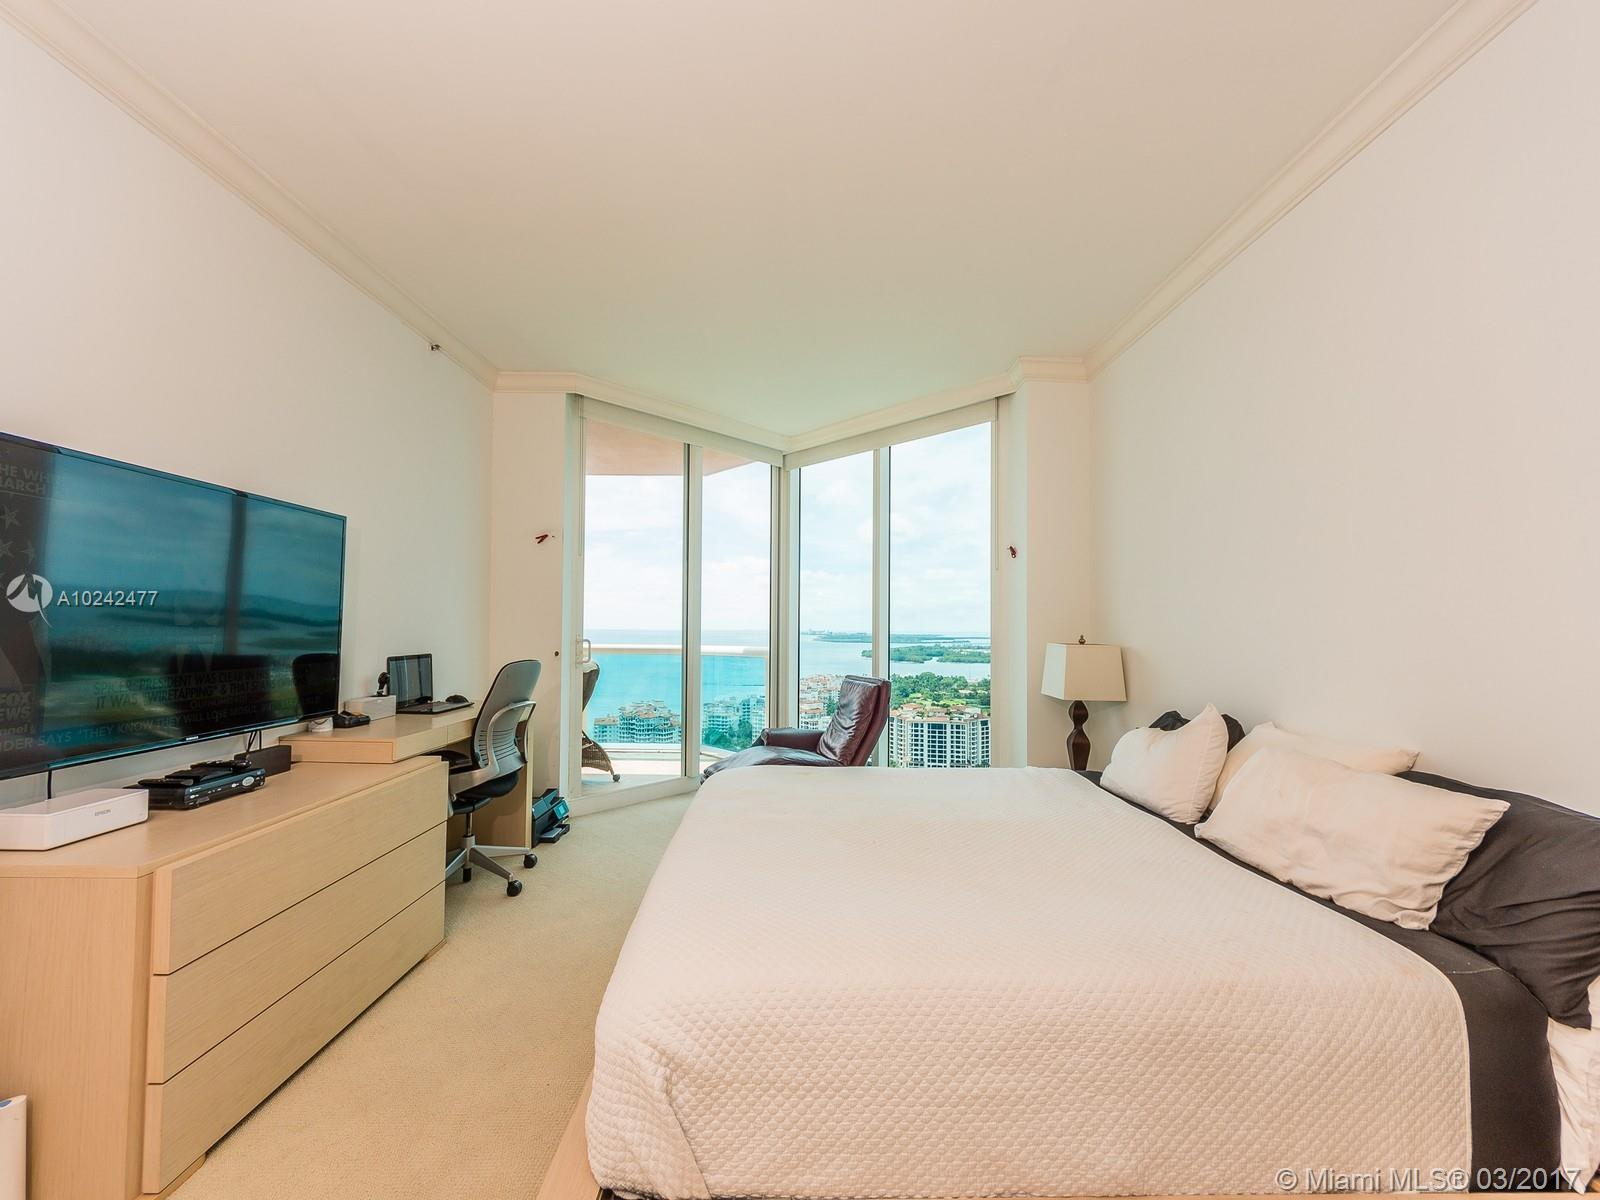 300 Pointe dr-3501 miami-beach--fl-33139-a10242477-Pic09